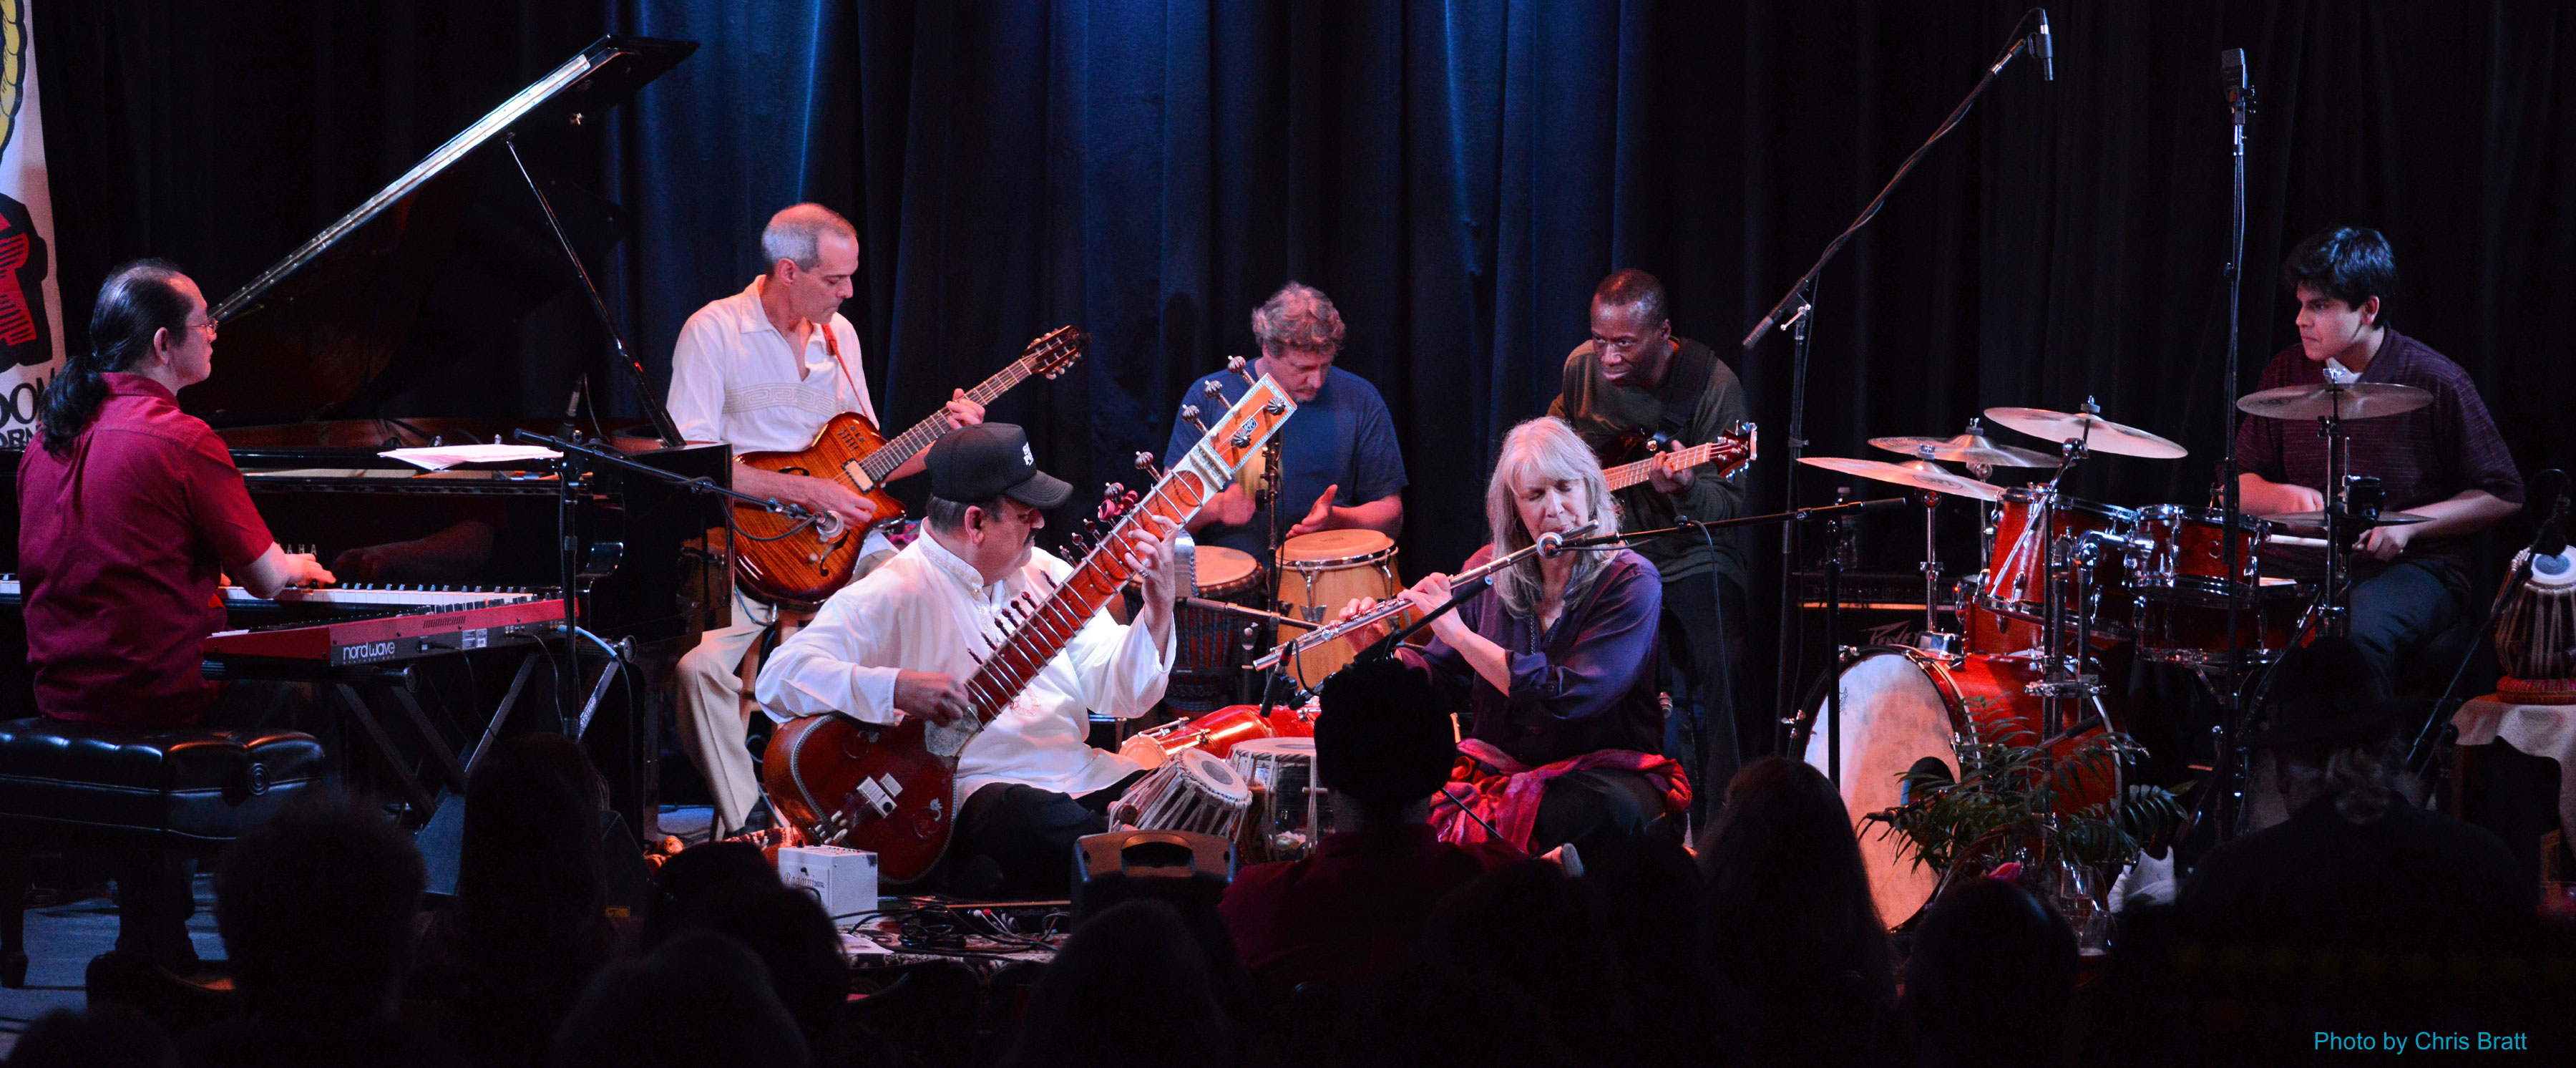 Sitar Power live at the Kuumbwa Jazz Center, Santa Cruz. All rights reserved. �2012 Ashwin Batish. Copyrighted image. Photographer Chris Bratt